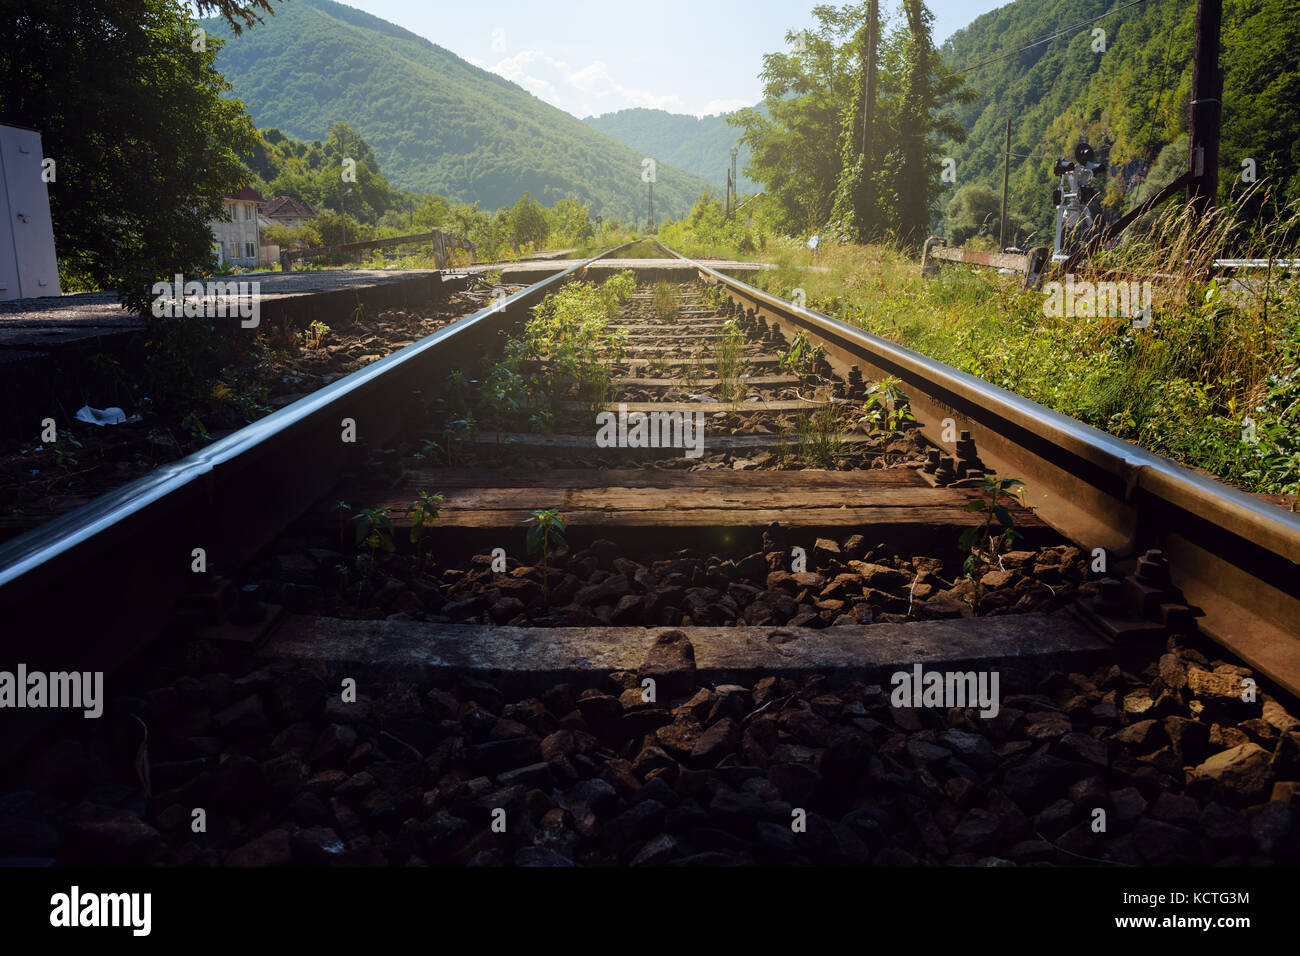 Low Angle View Of Railway Tracks With Diminishing Perspective Leading To Lush Green Mountains - Stock Image